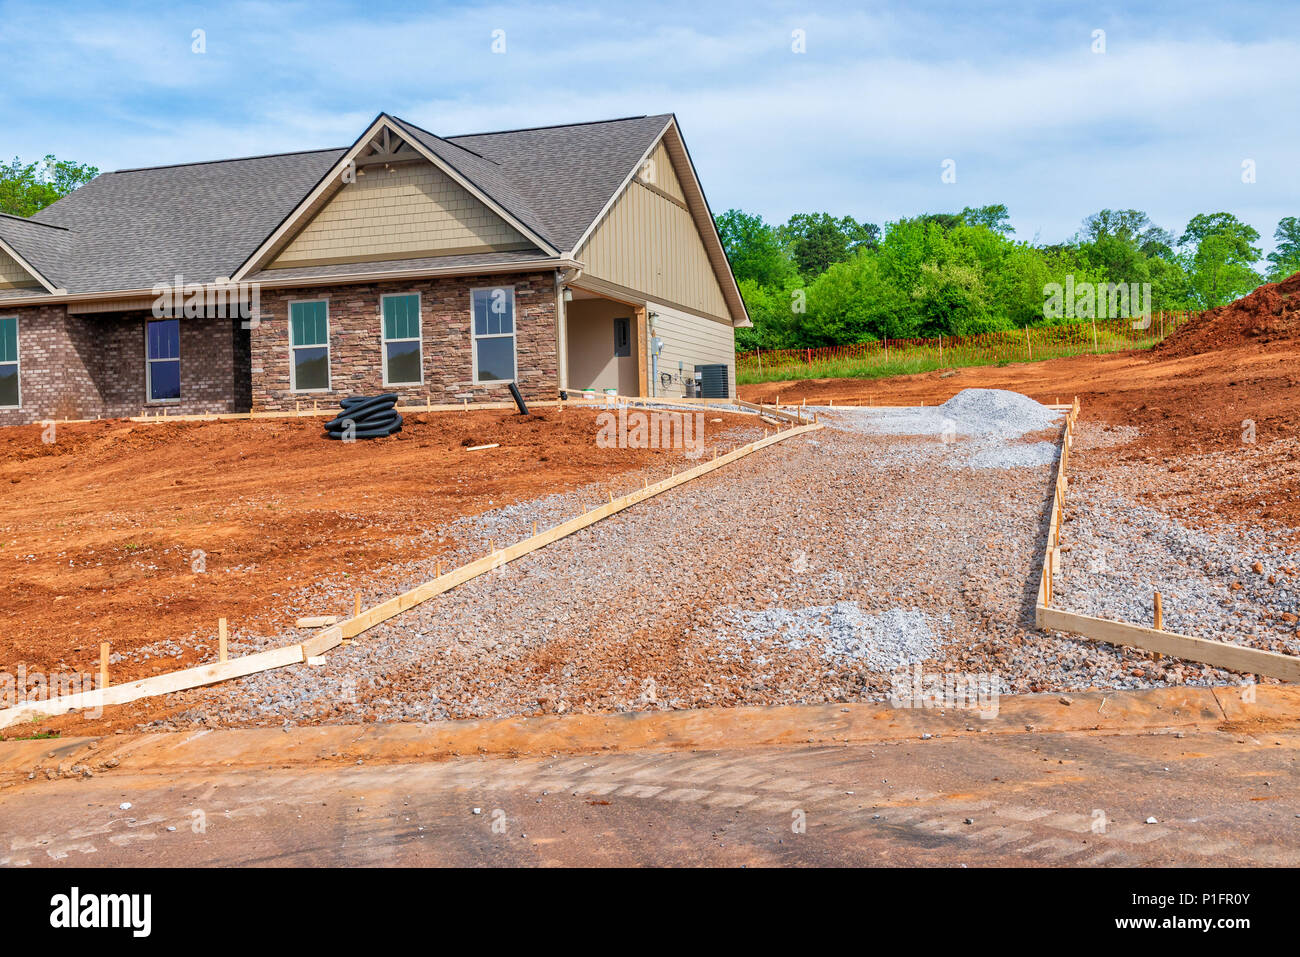 Horiozntal shot of driveway construction on new home. Stock Photo